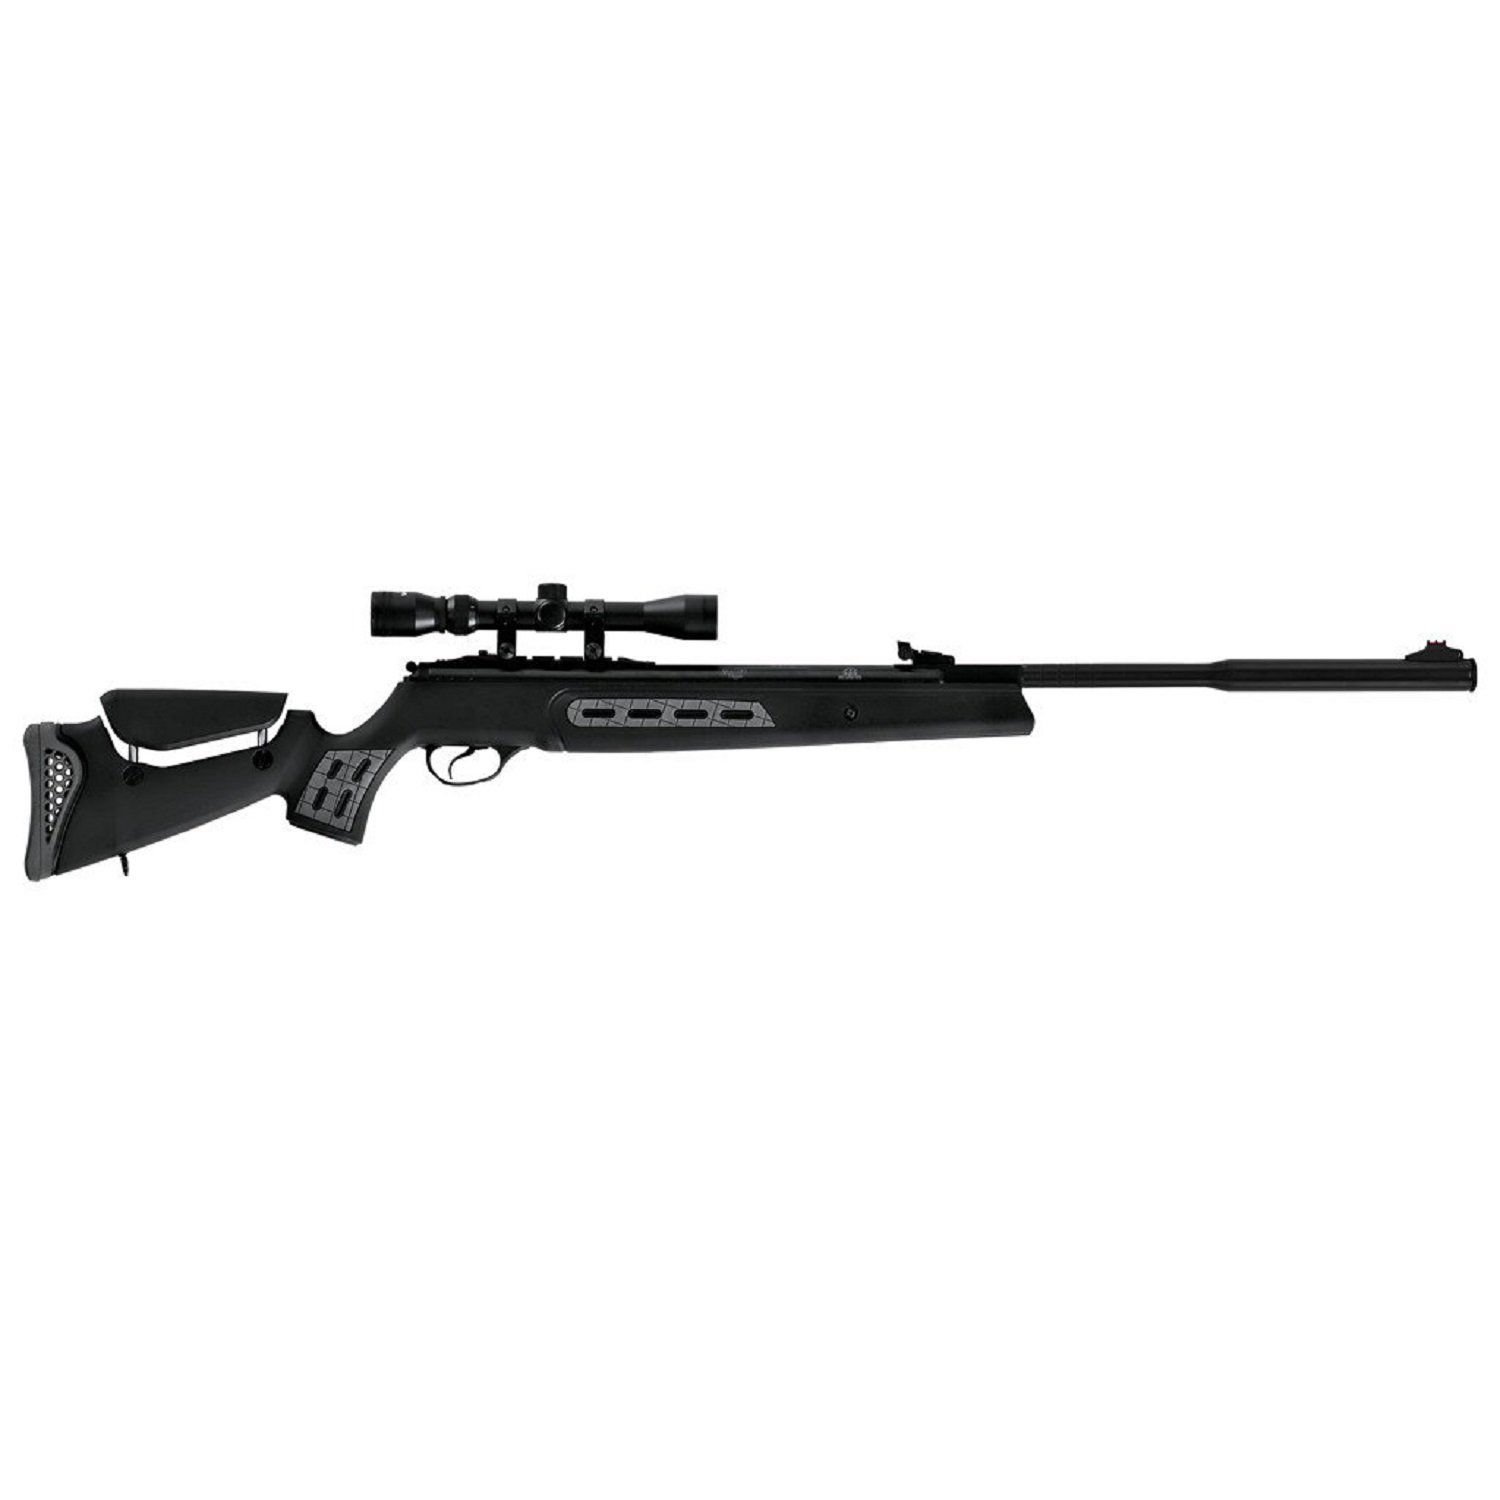 Hatsan Mod 125 Sniper Vortex QE .22 Caliber Air Rifle-Scope